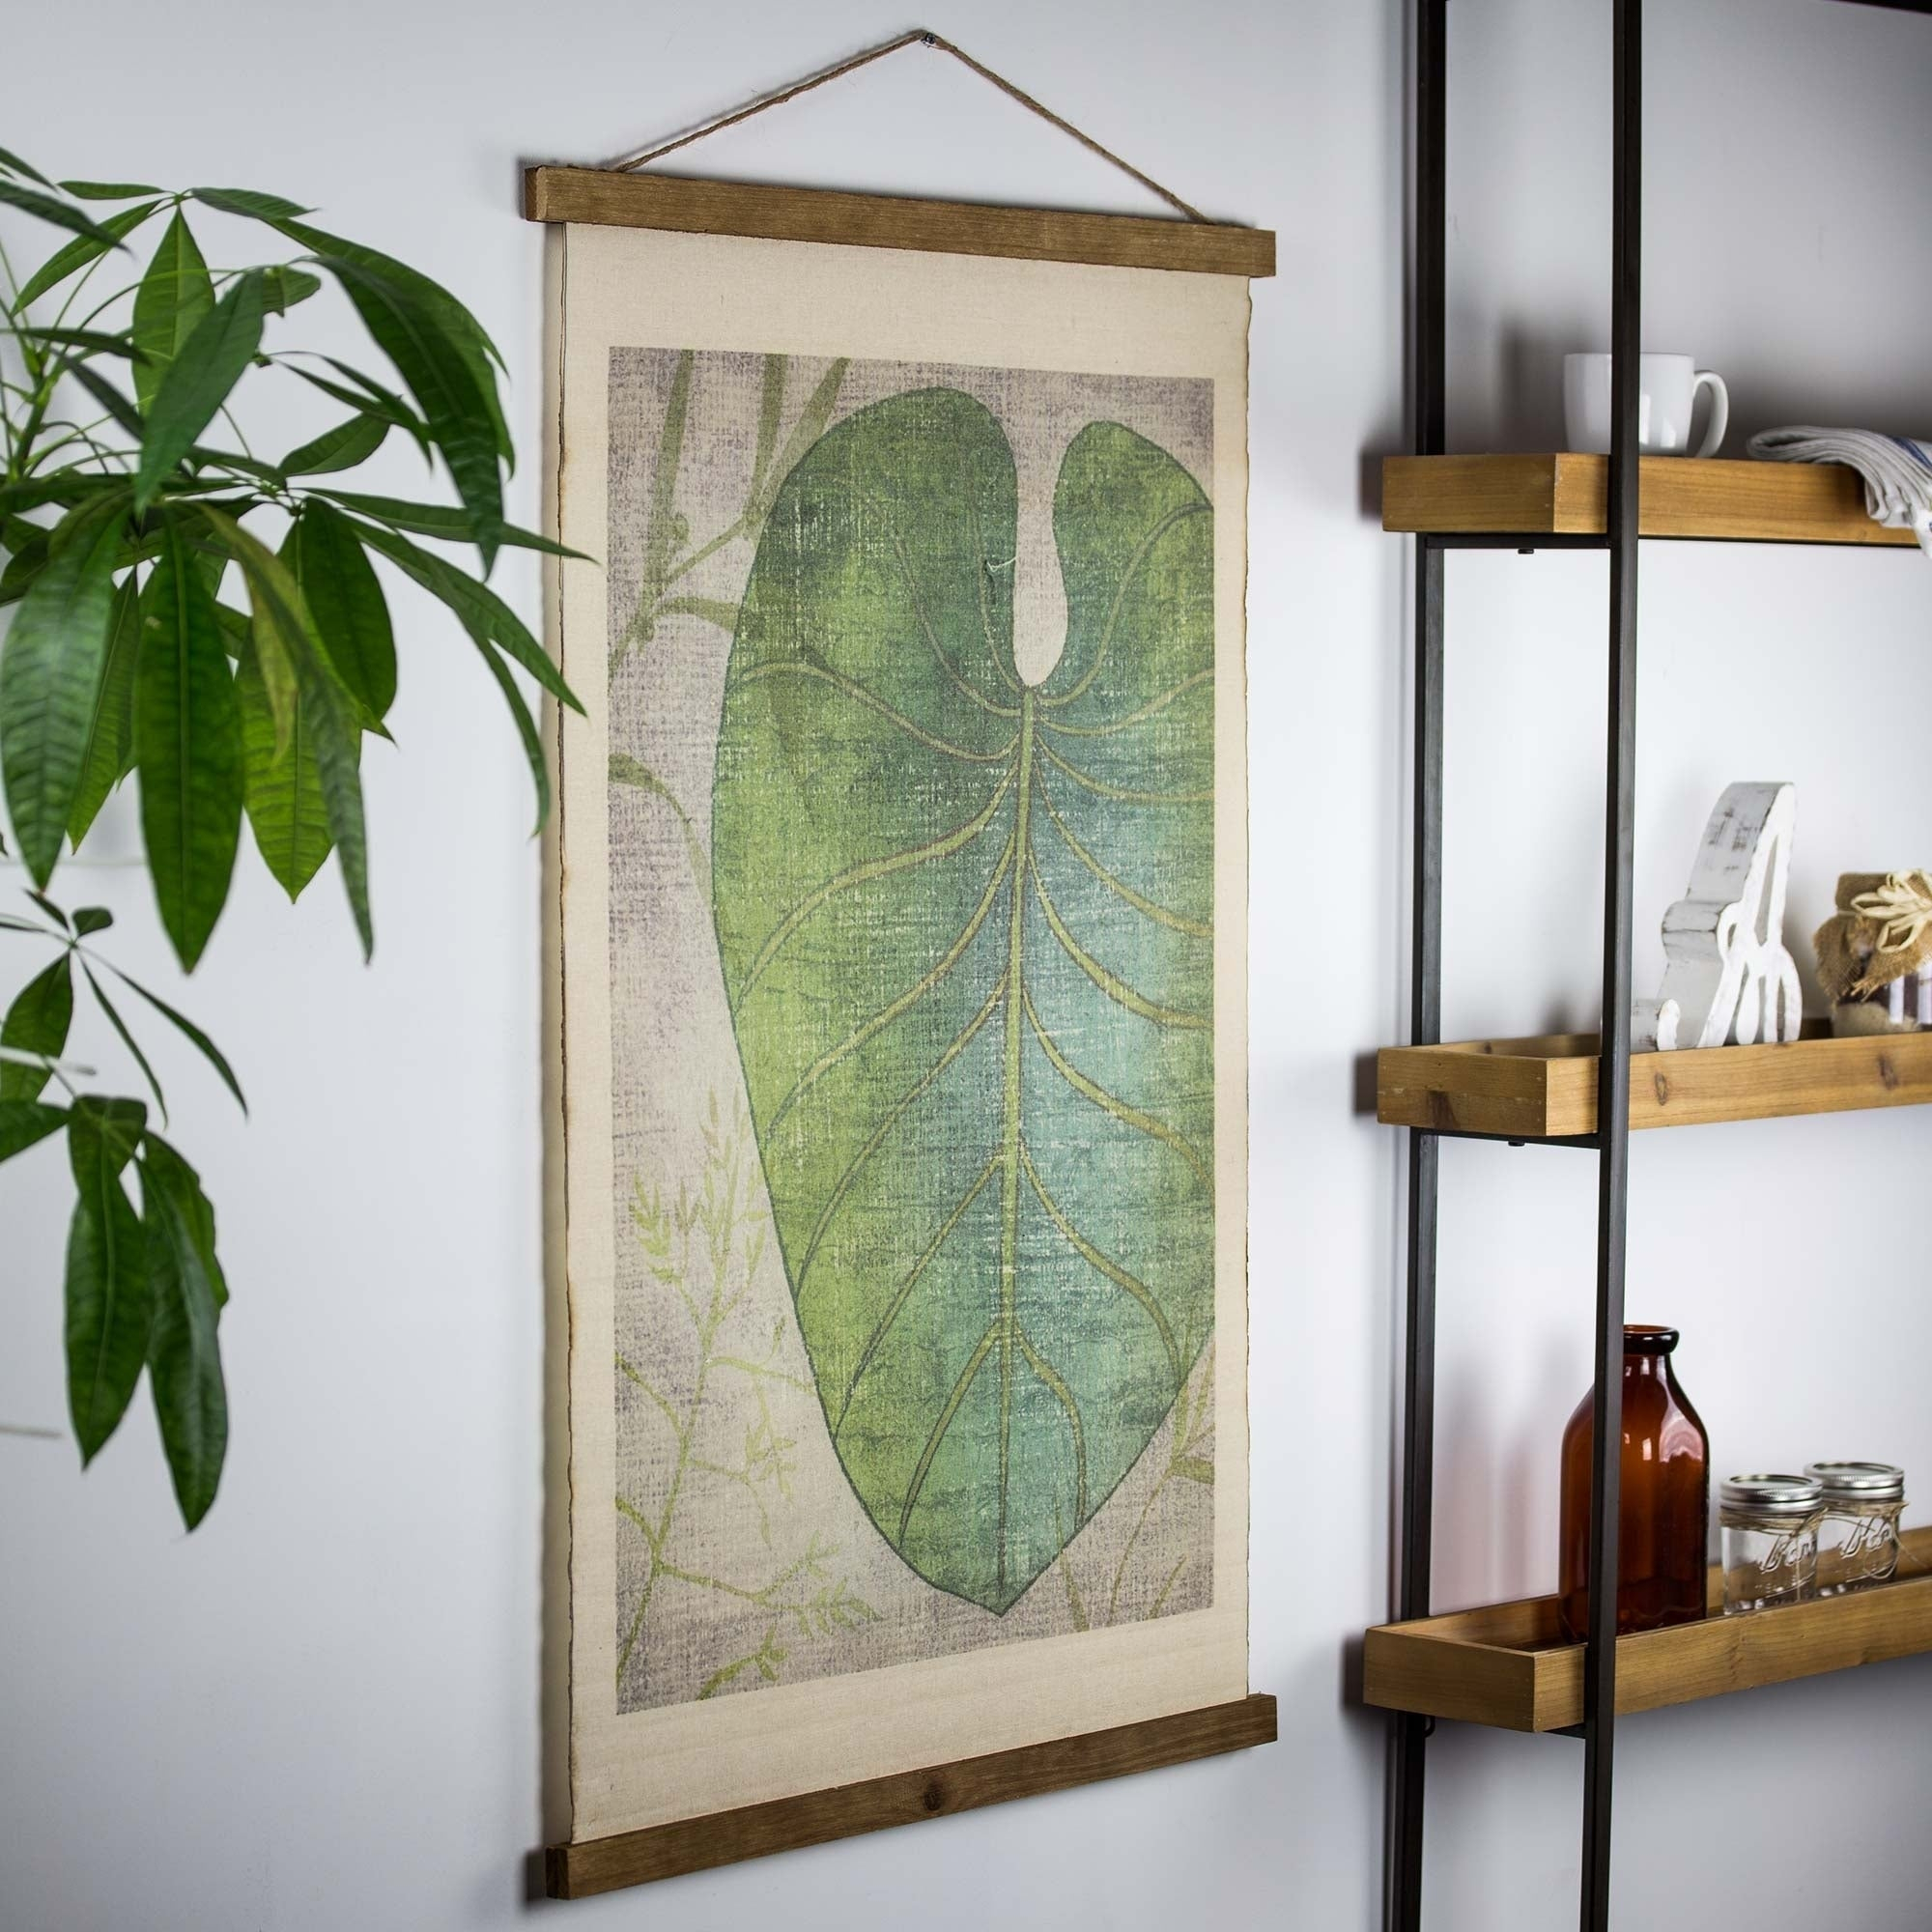 Discontinued – American Art Decor Leaf Wall Scroll Tapestry With Rope With Scroll Leaf Wall Decor (View 14 of 30)